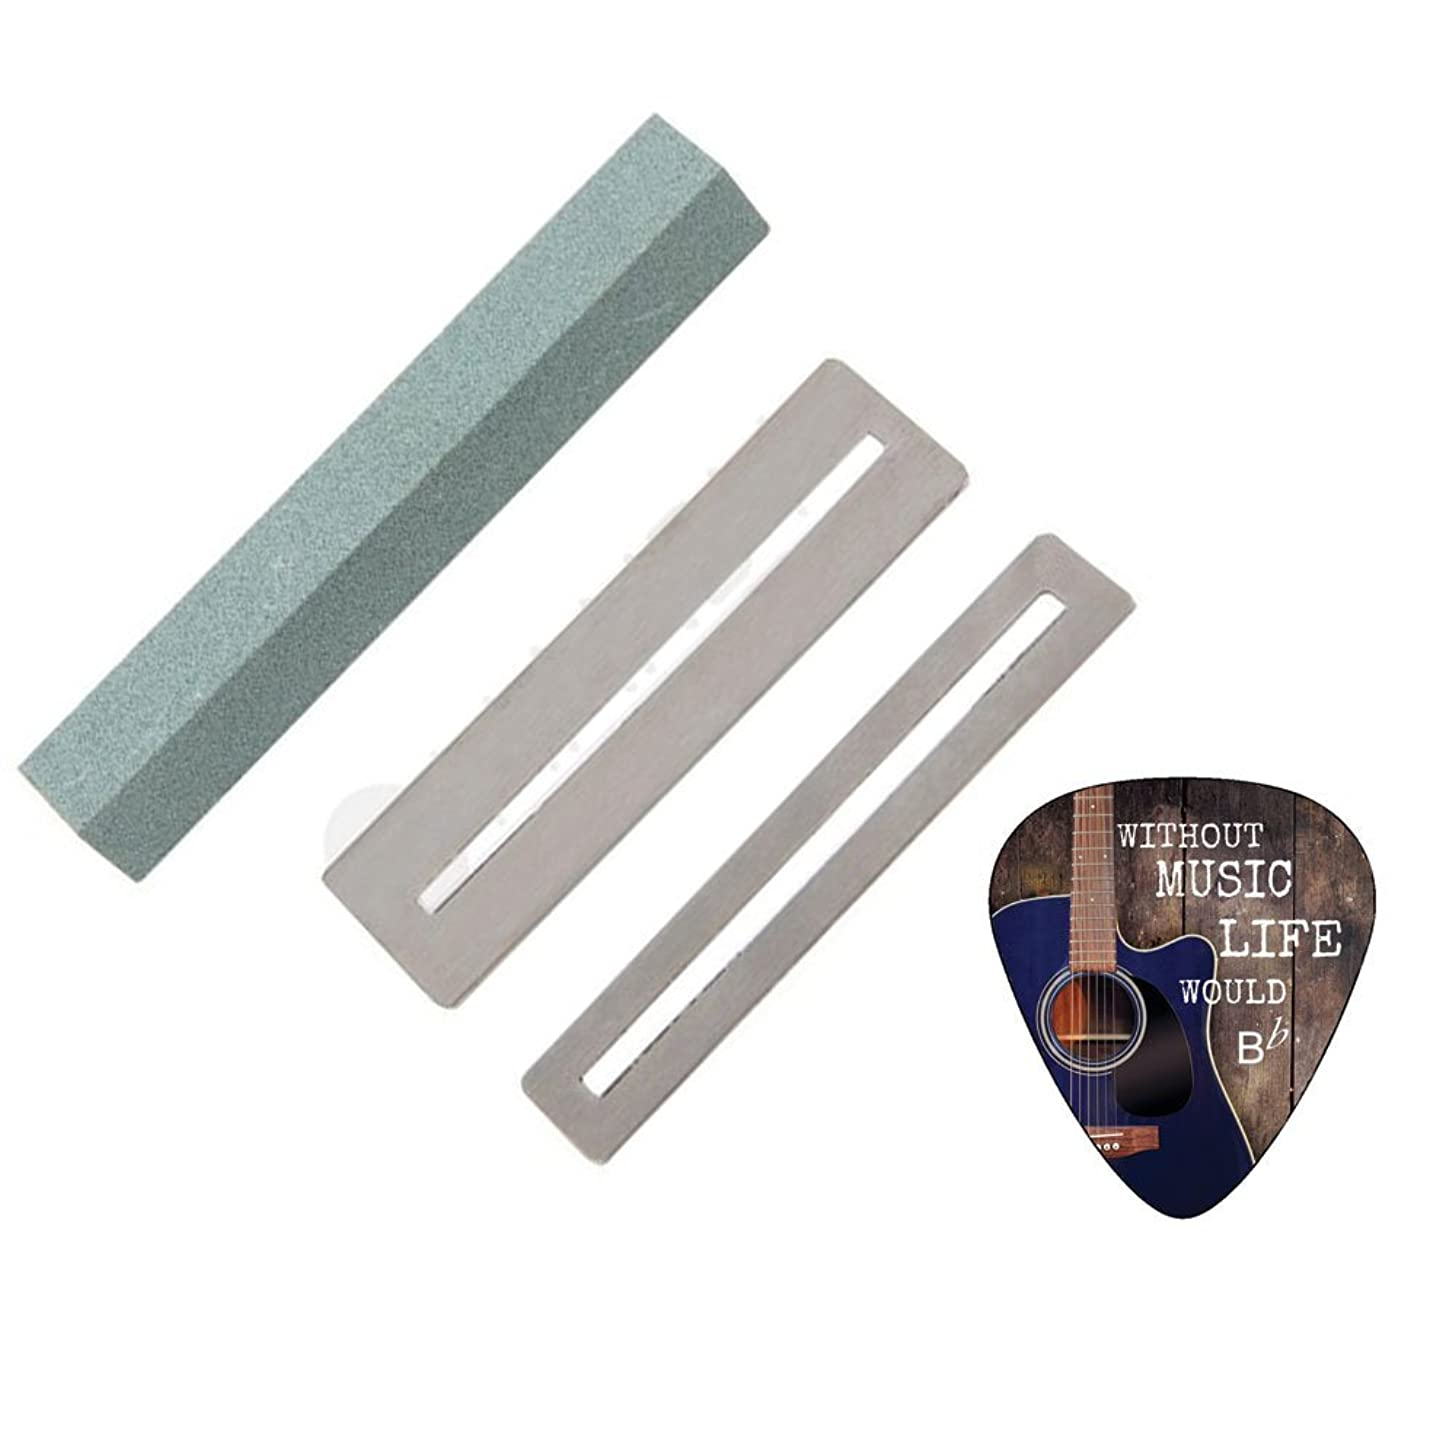 Fingerboard Guards and Guitar Fret File Cleaning Tool Set by Creanoso